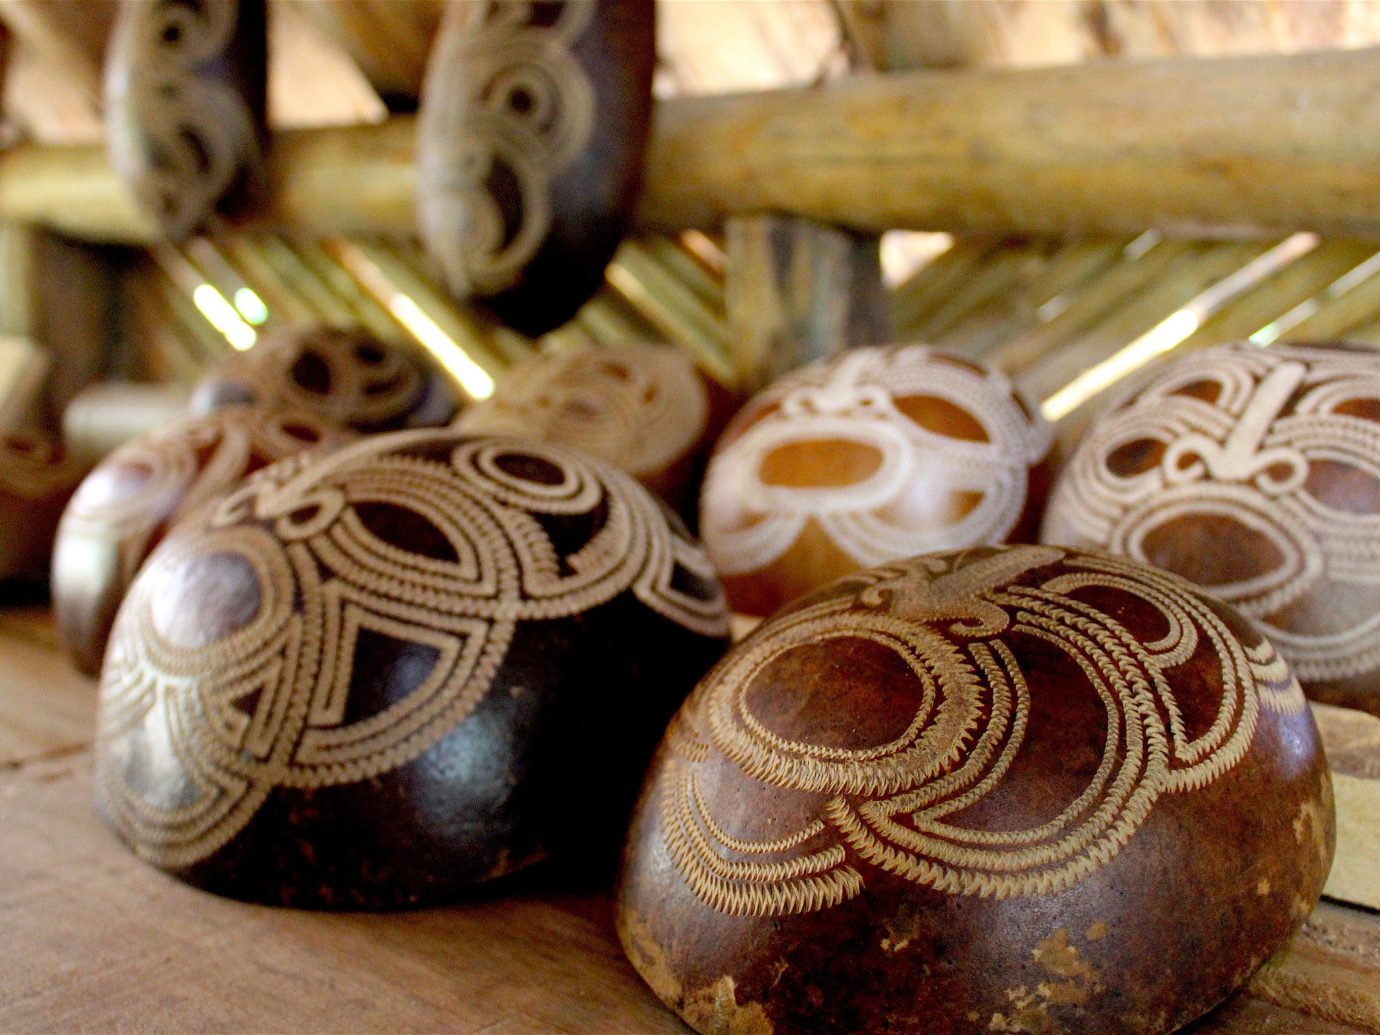 Trip Ideas man made object carving wood art food